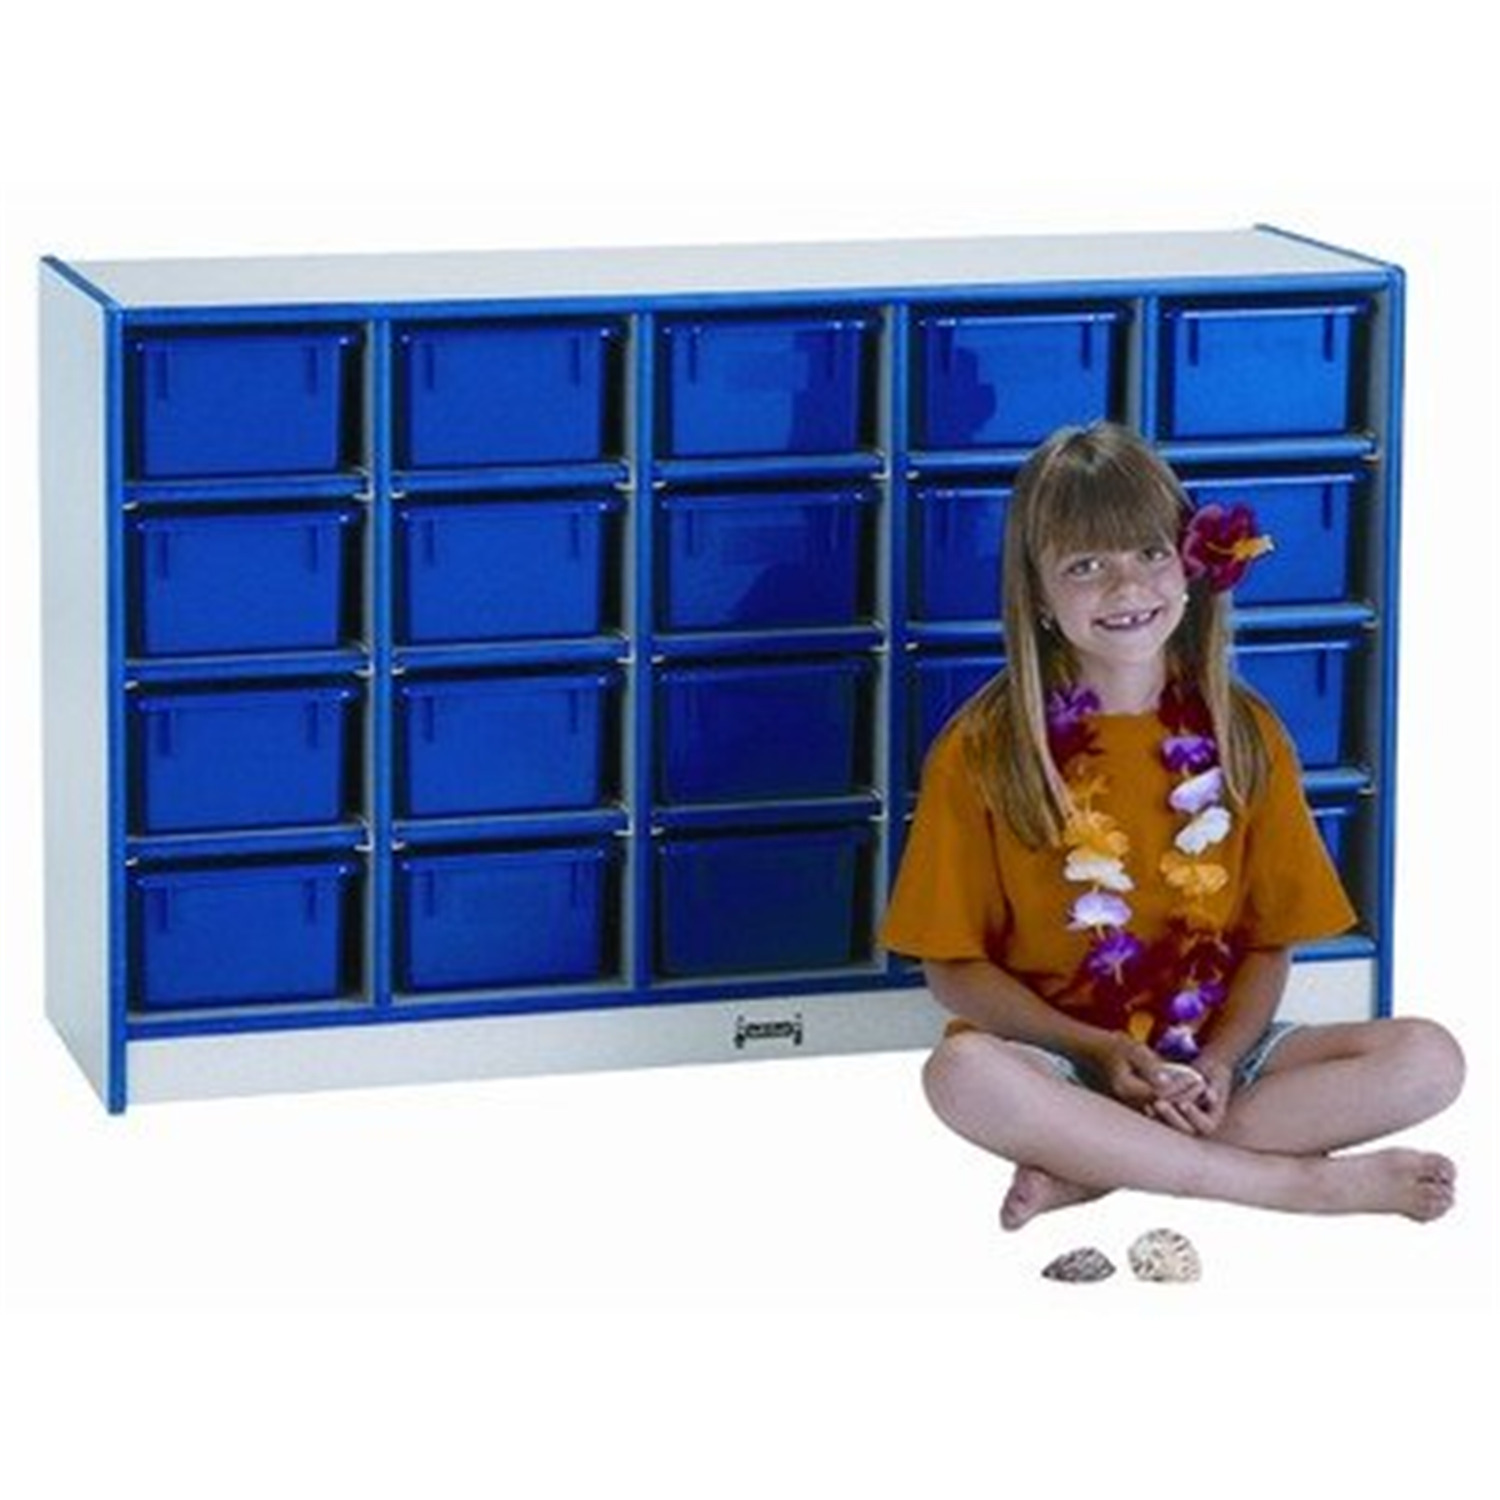 30 Tray Mobile Cubbie With Trays - [0431JCWW004]